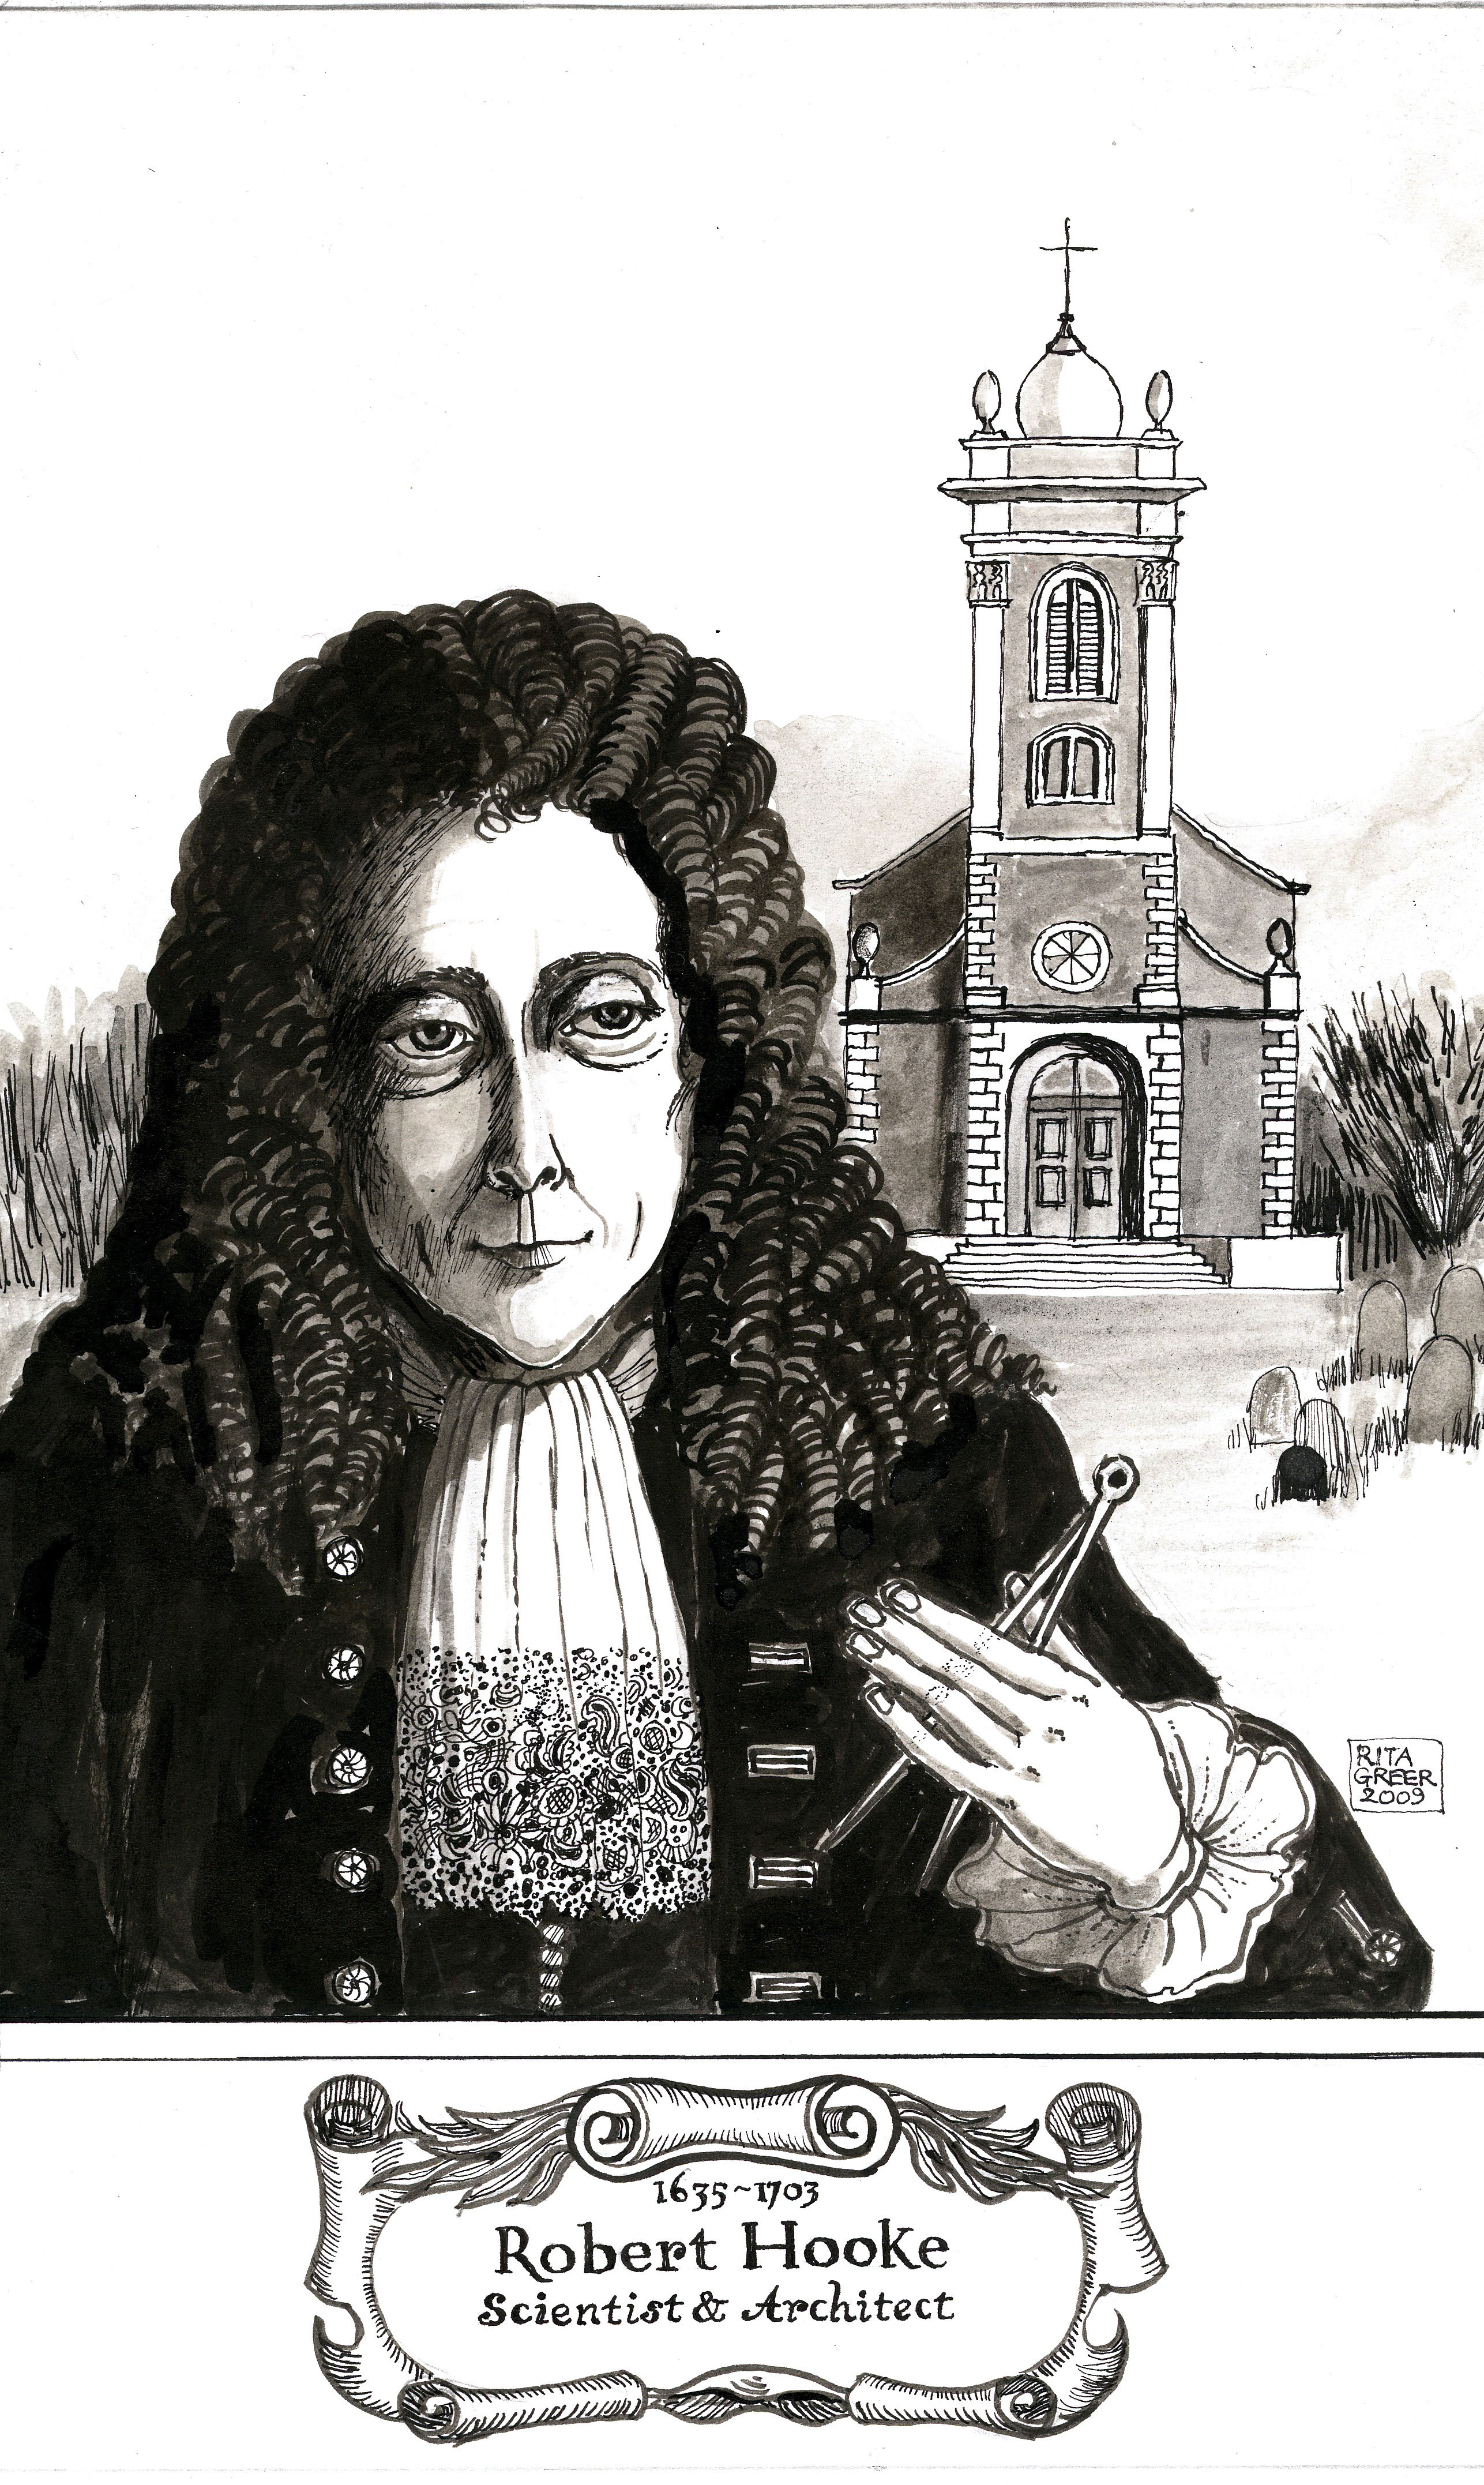 a biography of robert hooke a british scientist from the 17th century